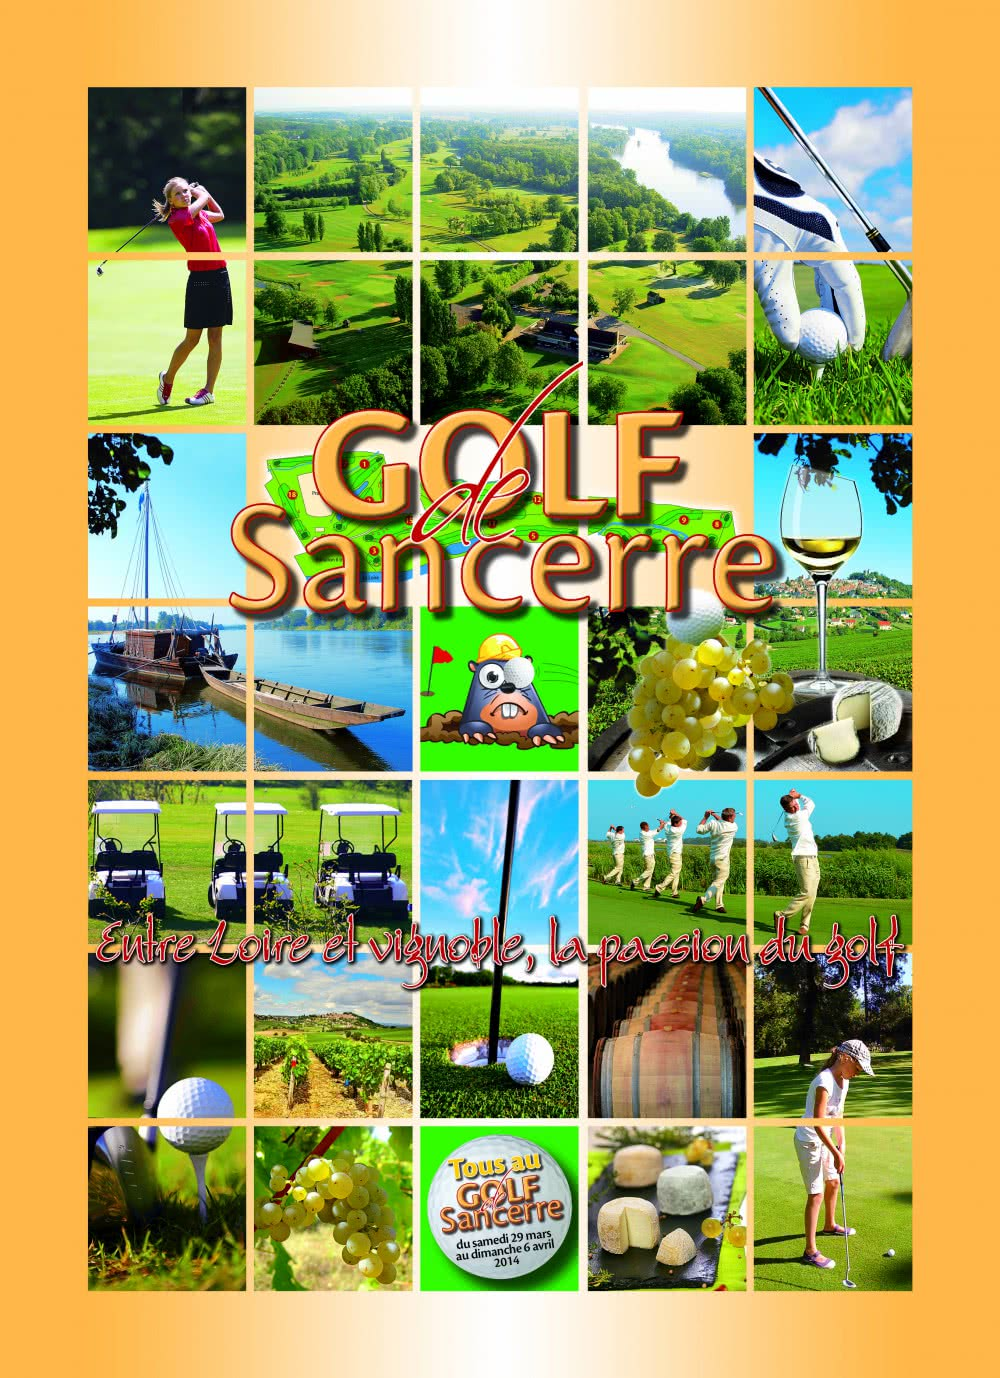 GOLF DE SANCERRE